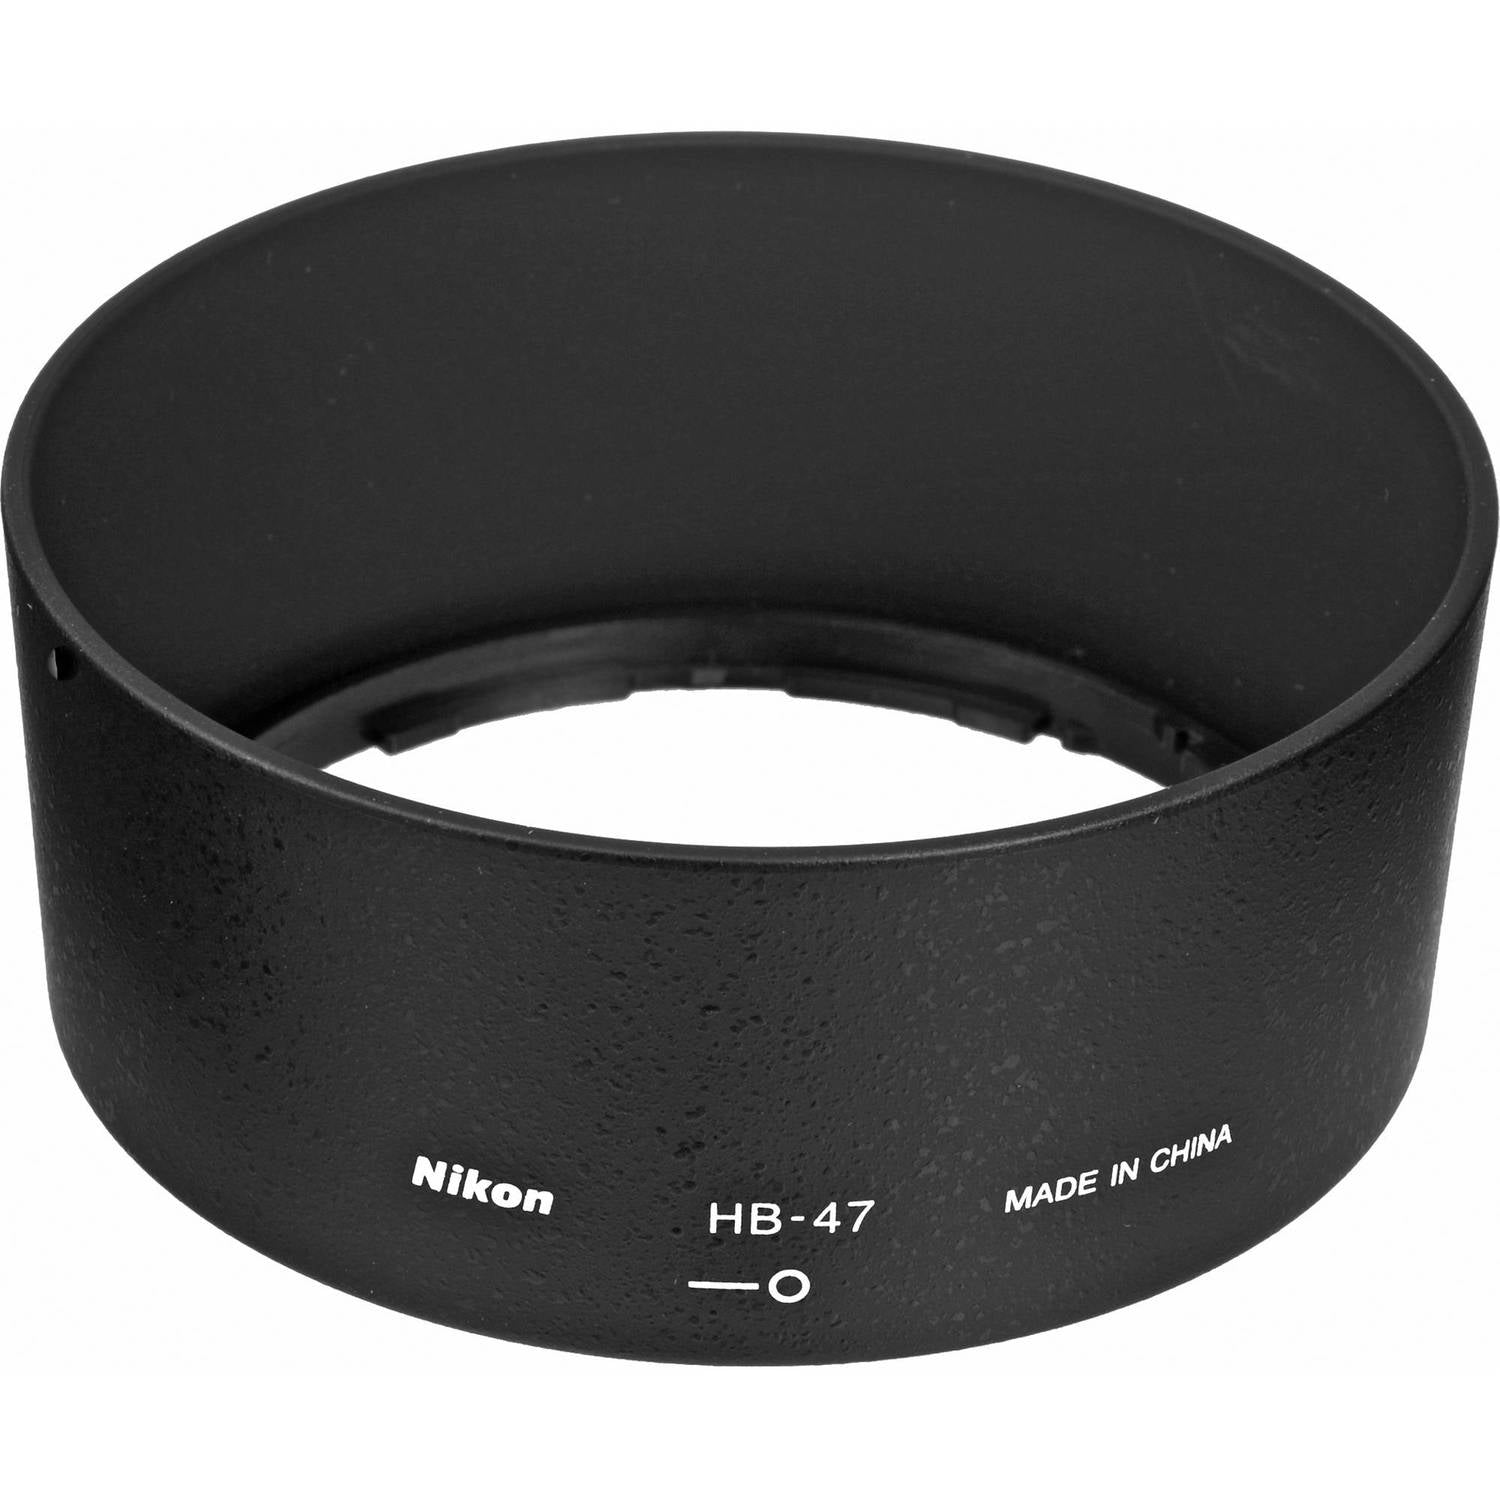 Nikon HB-47 Bayonet Lens Hood for AF-S 50mm f/1.4G